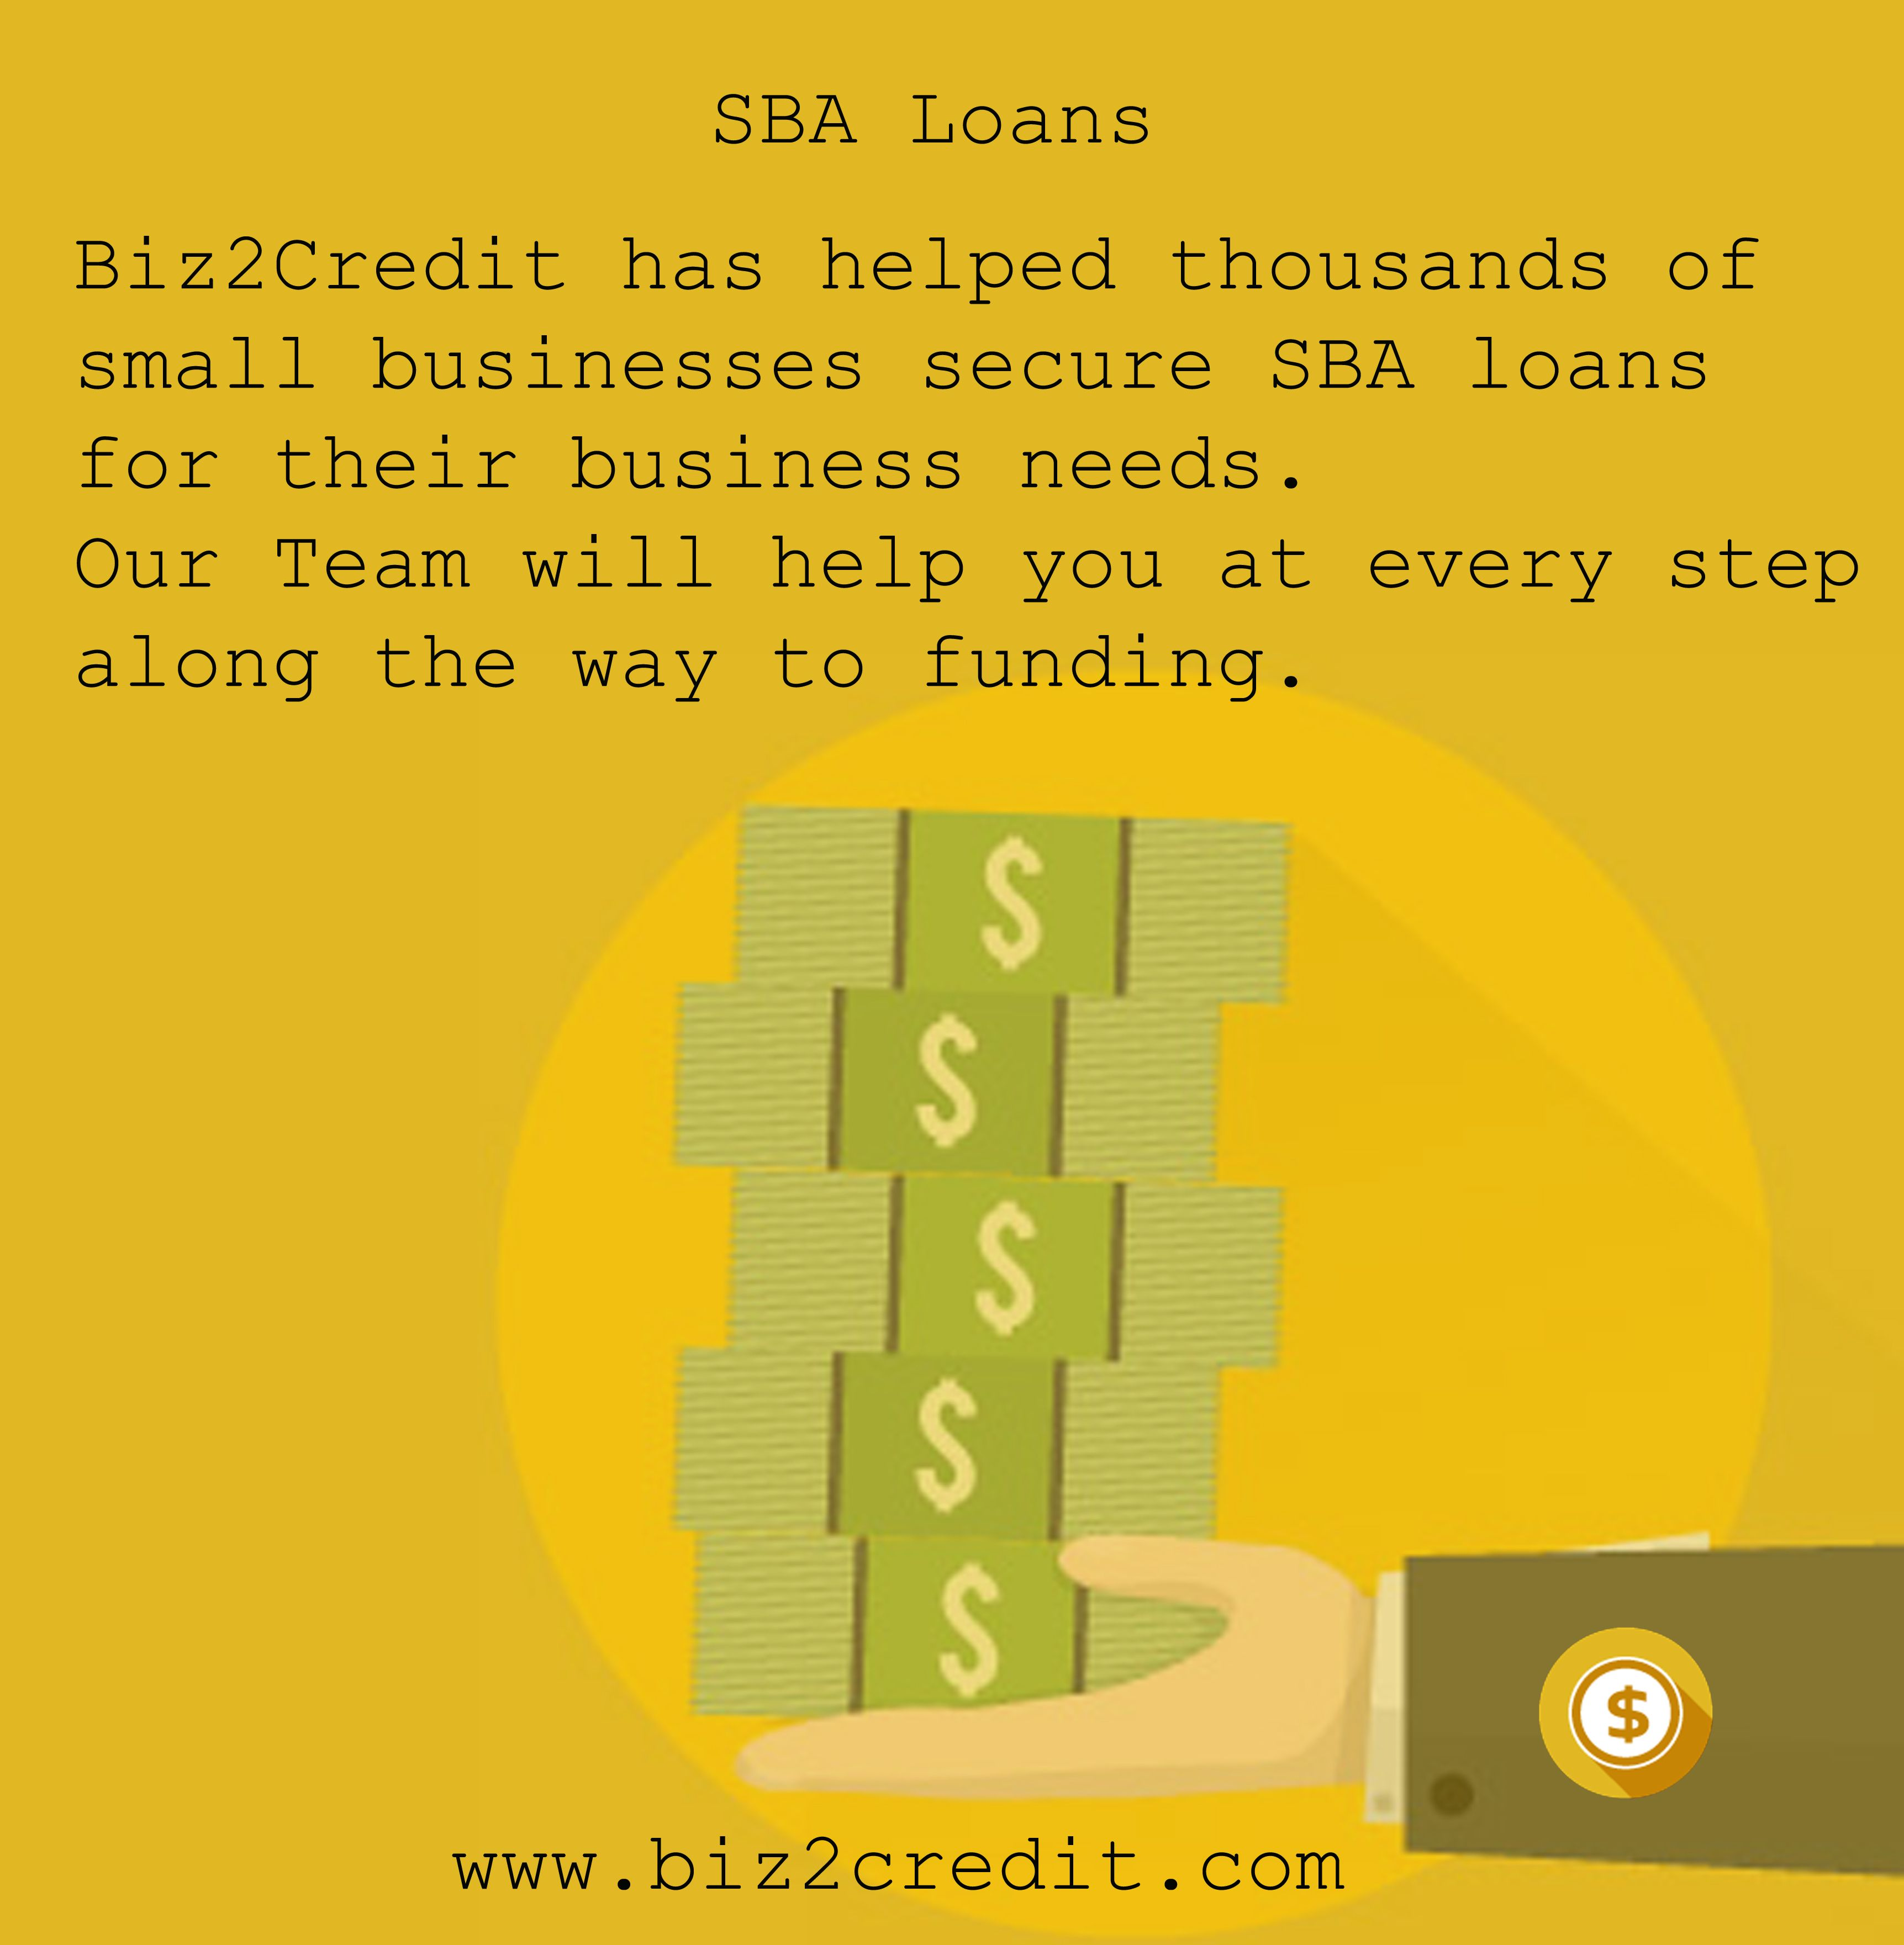 The Small Business Administration Sba Has A Number Of Loan Programs Designed Specifically For Small And Medium Small Business Loans Sba Loans Business Loans